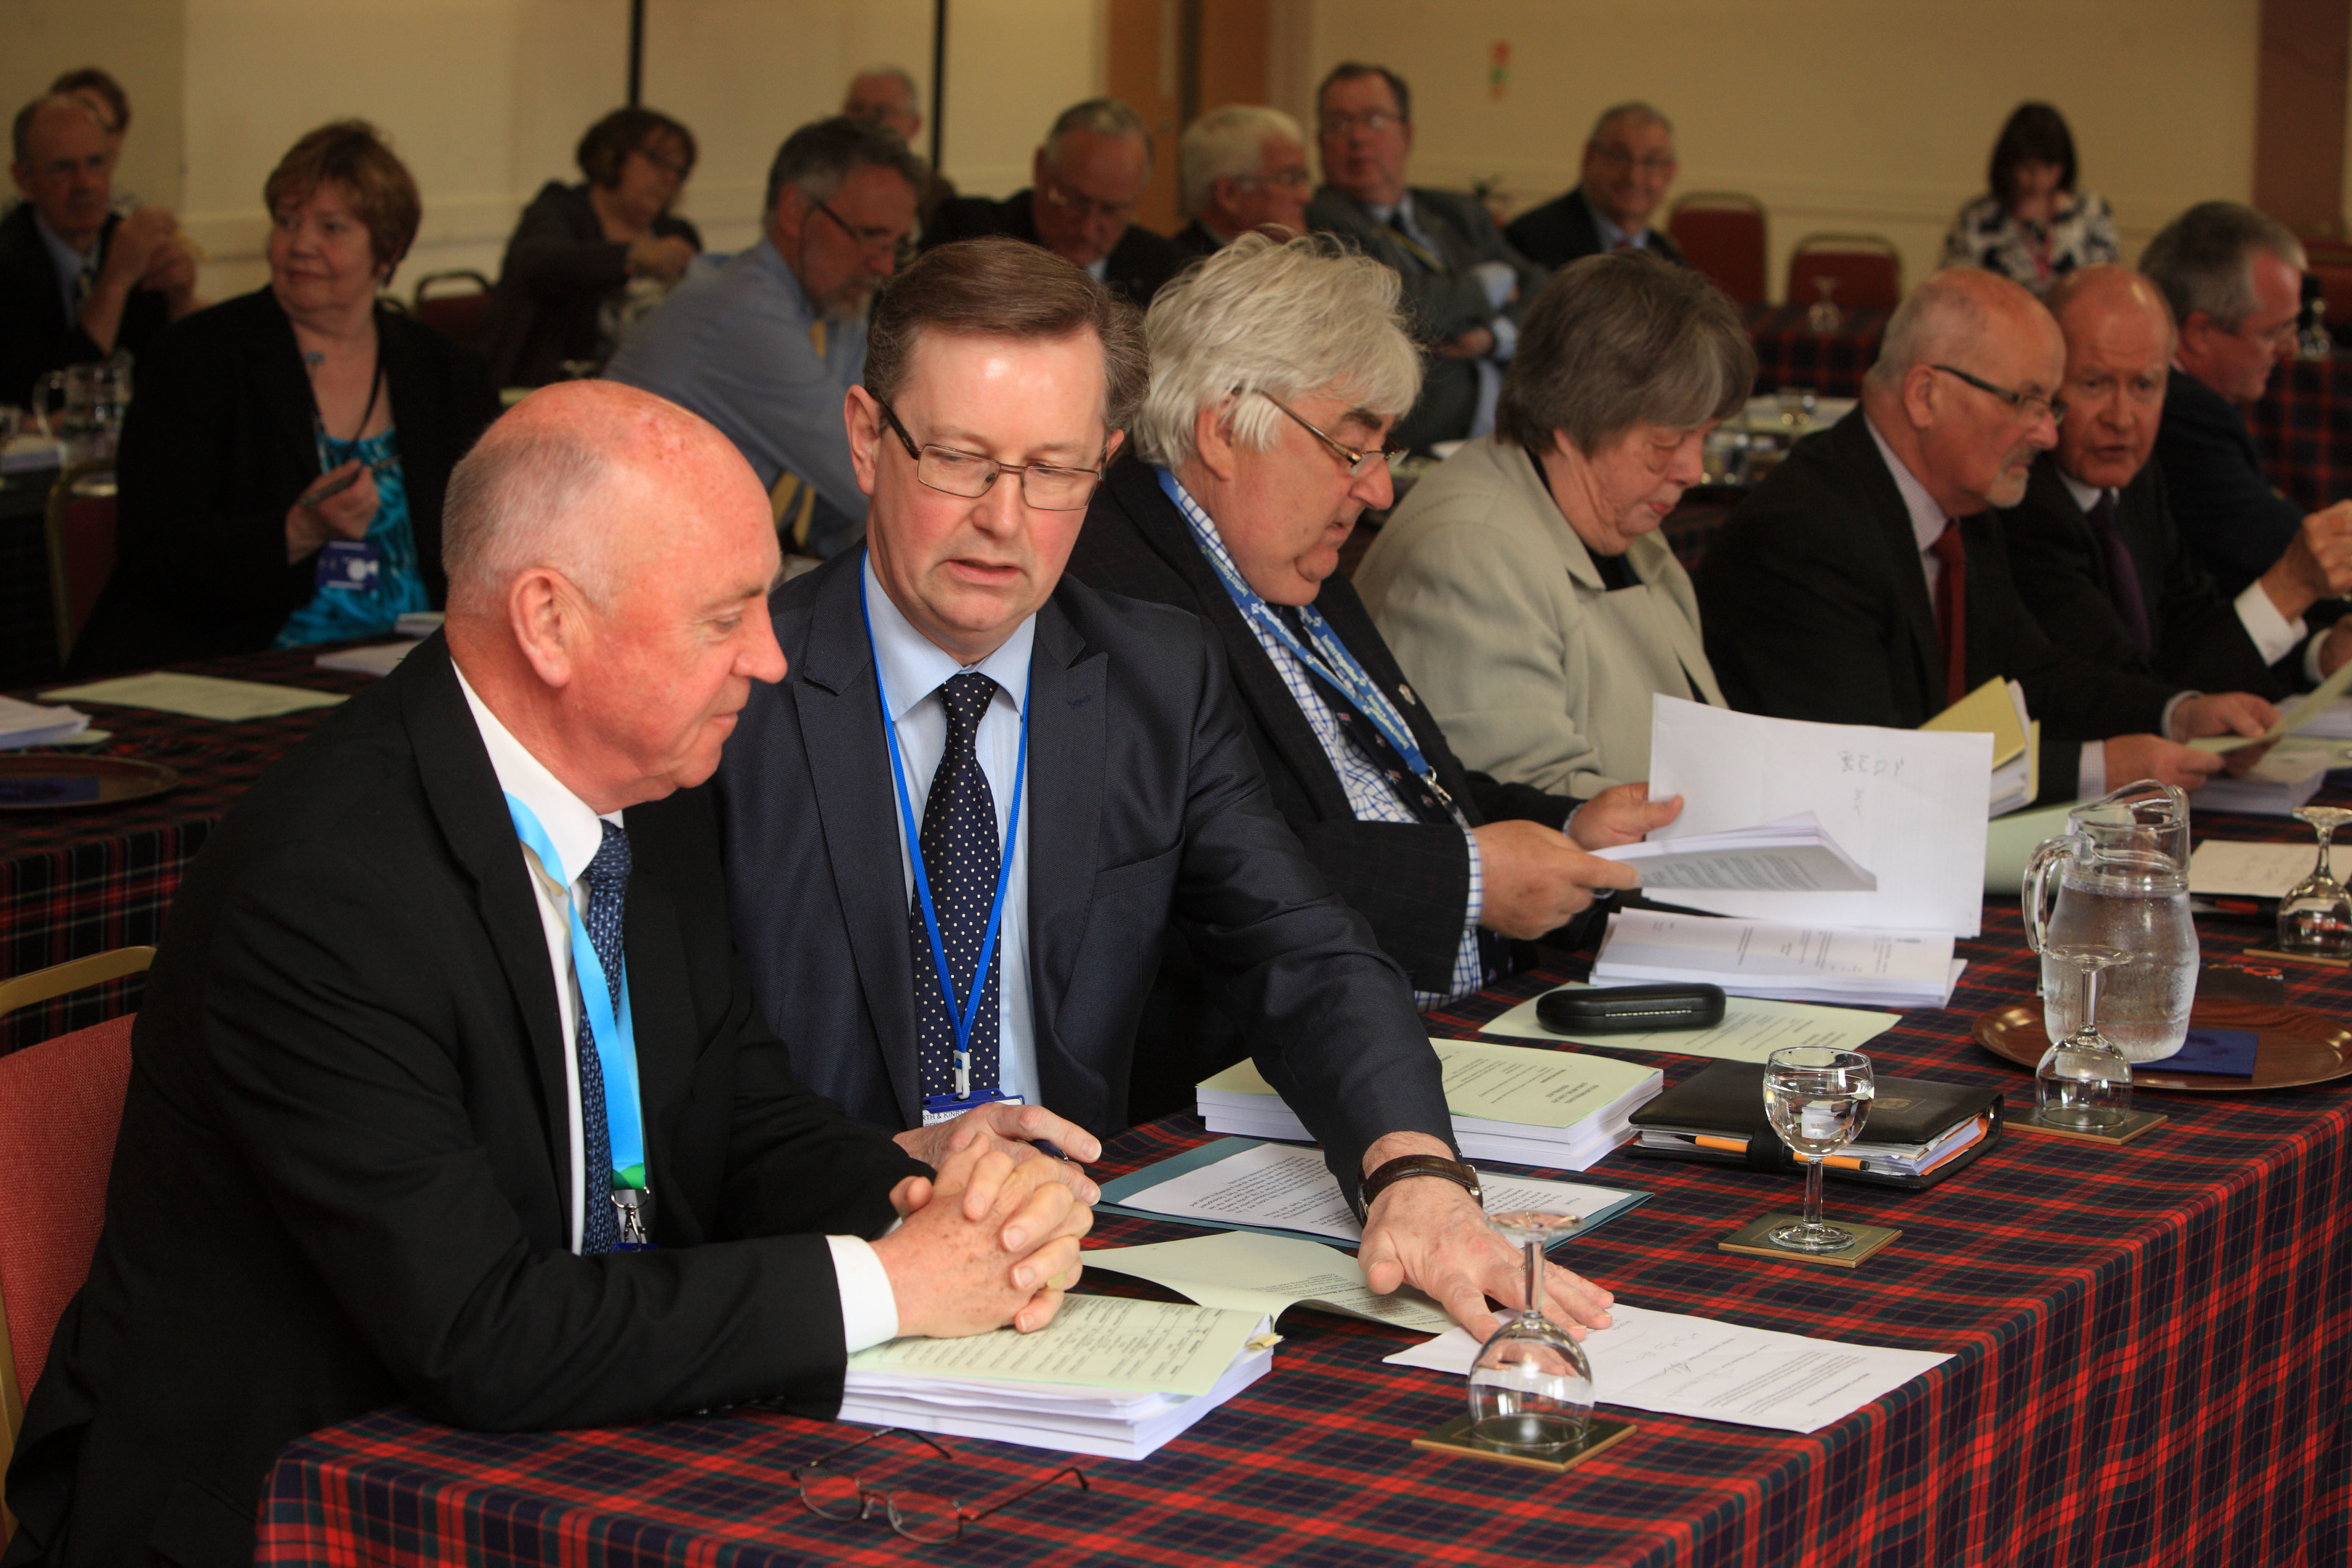 Mac Roberts (left) and Alexander Stewart at the meeting.